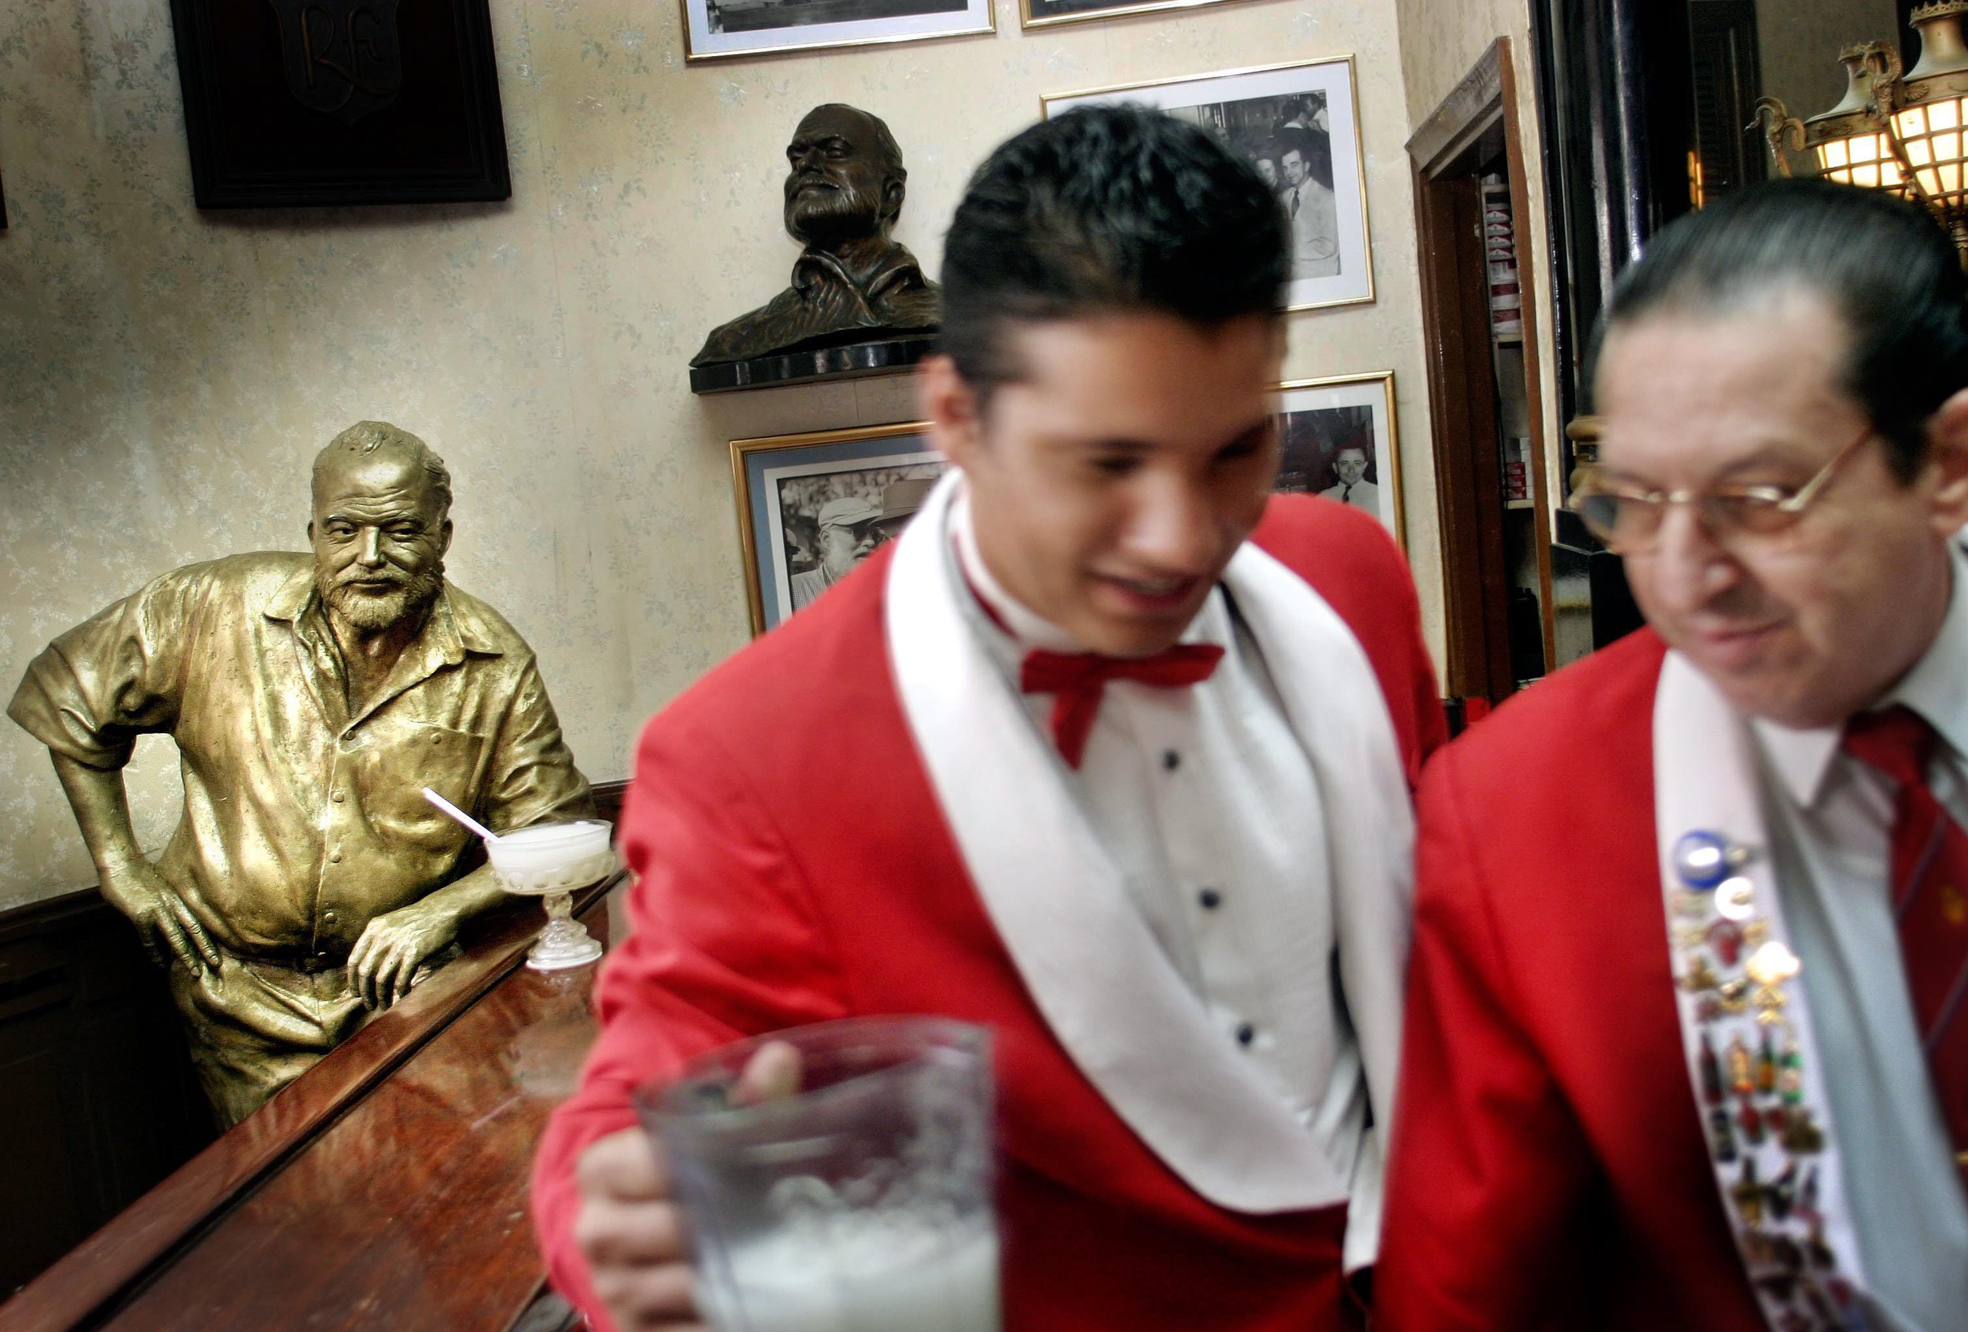 The Cocktail King Of Cuba: The Man Who Invented Hemingway's Favorite Daiquiri   WGBH   Craving Boston